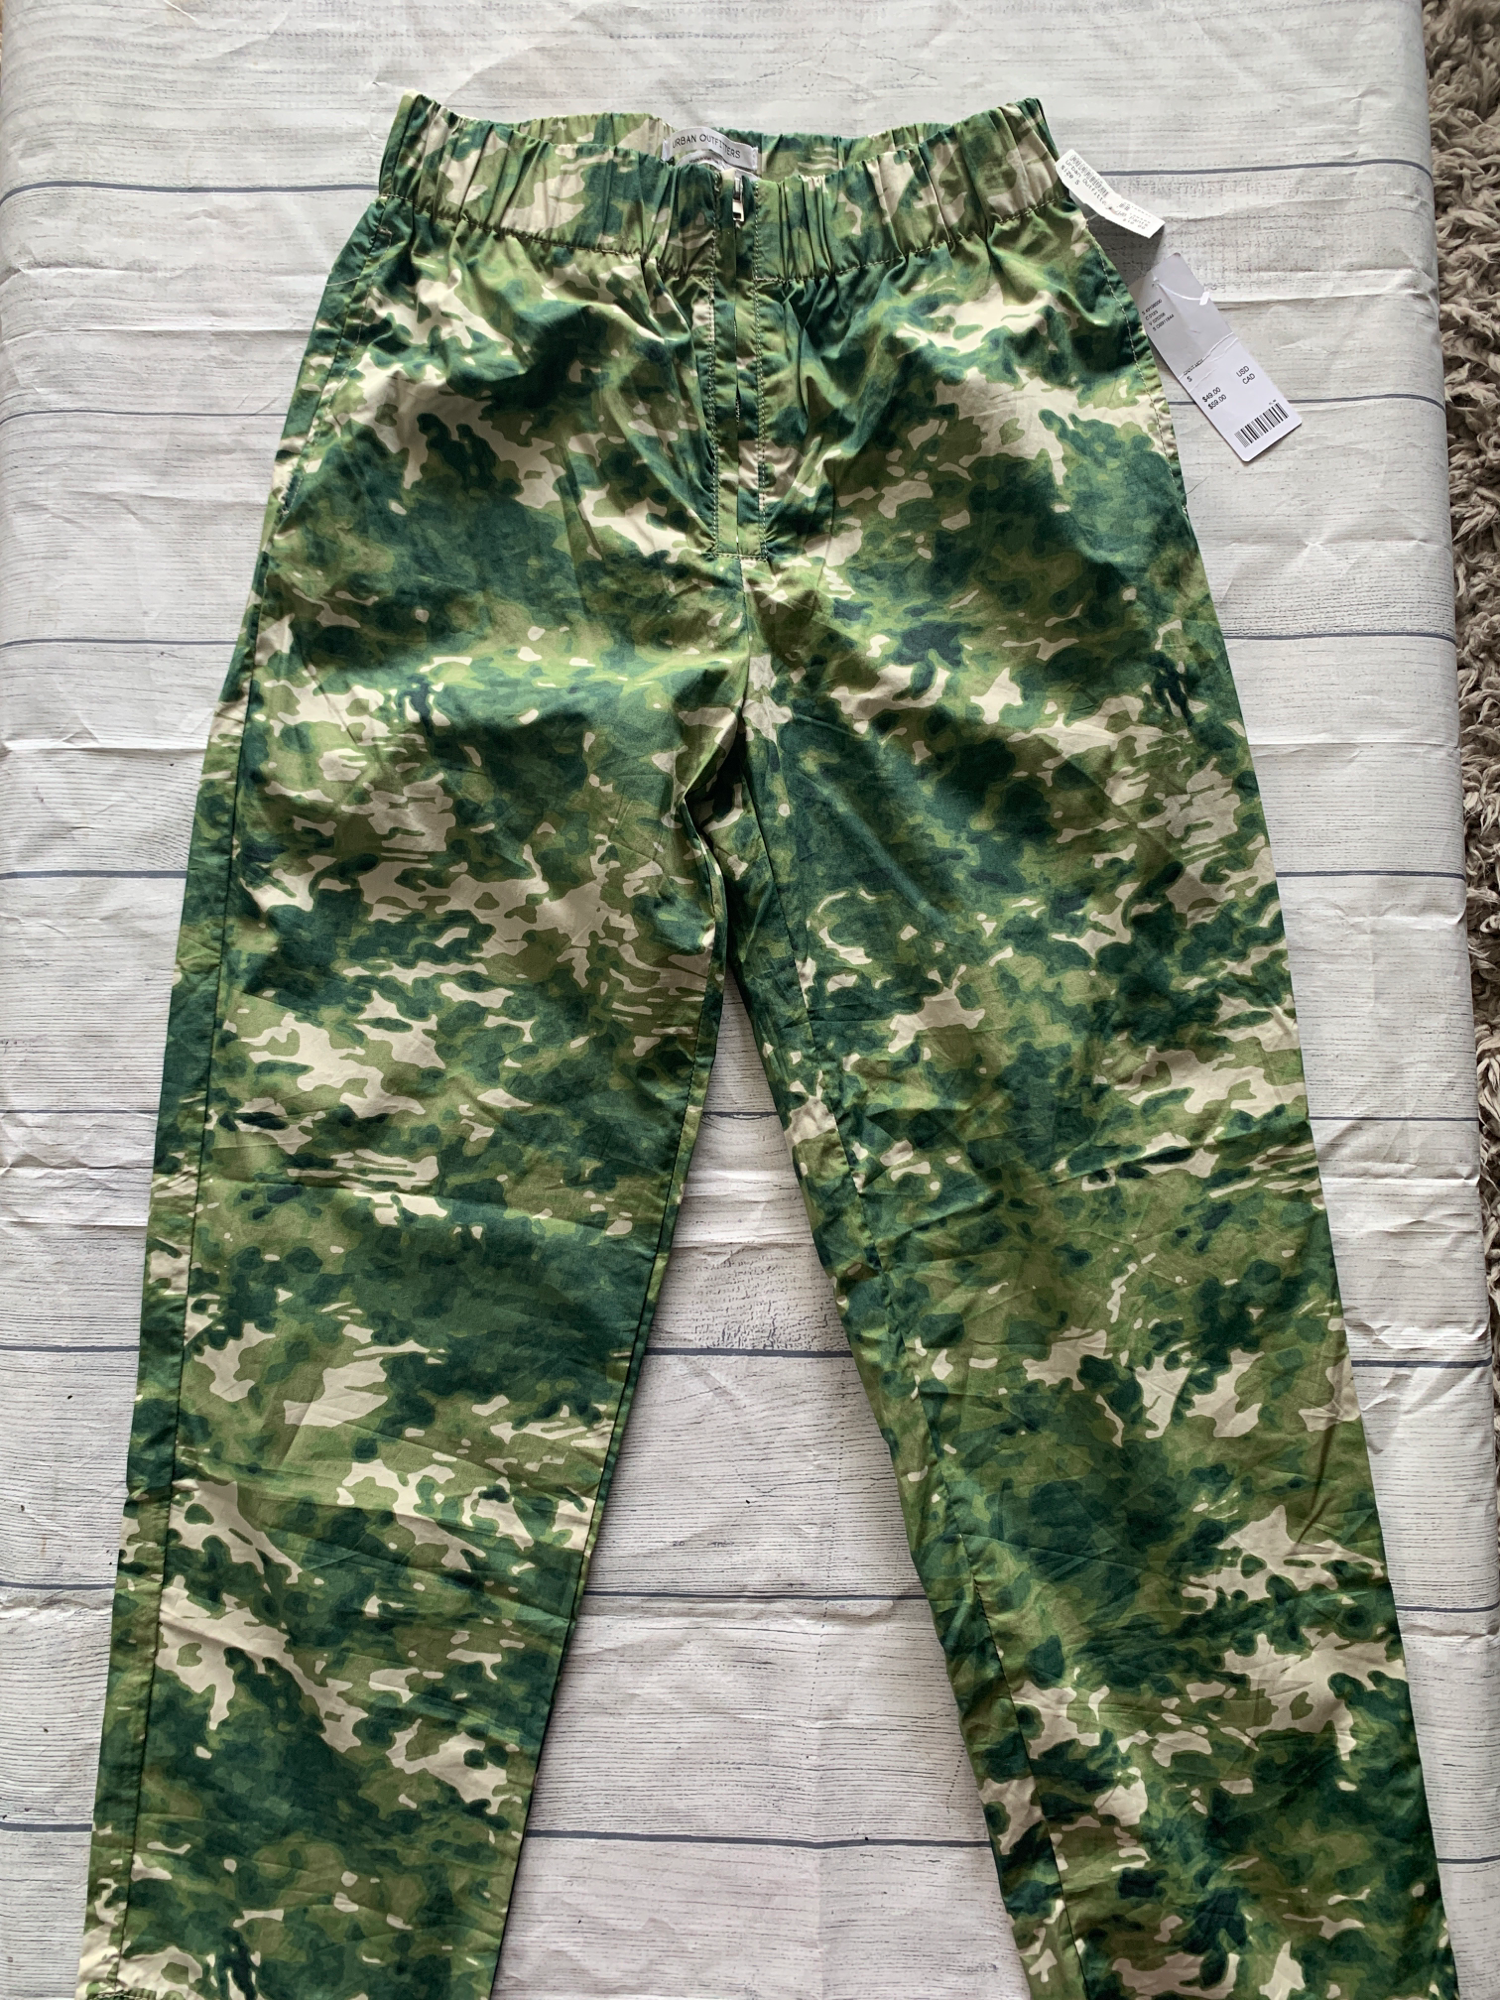 Urban Outfitters ( U ) Pants Size Small - Plato's Closet